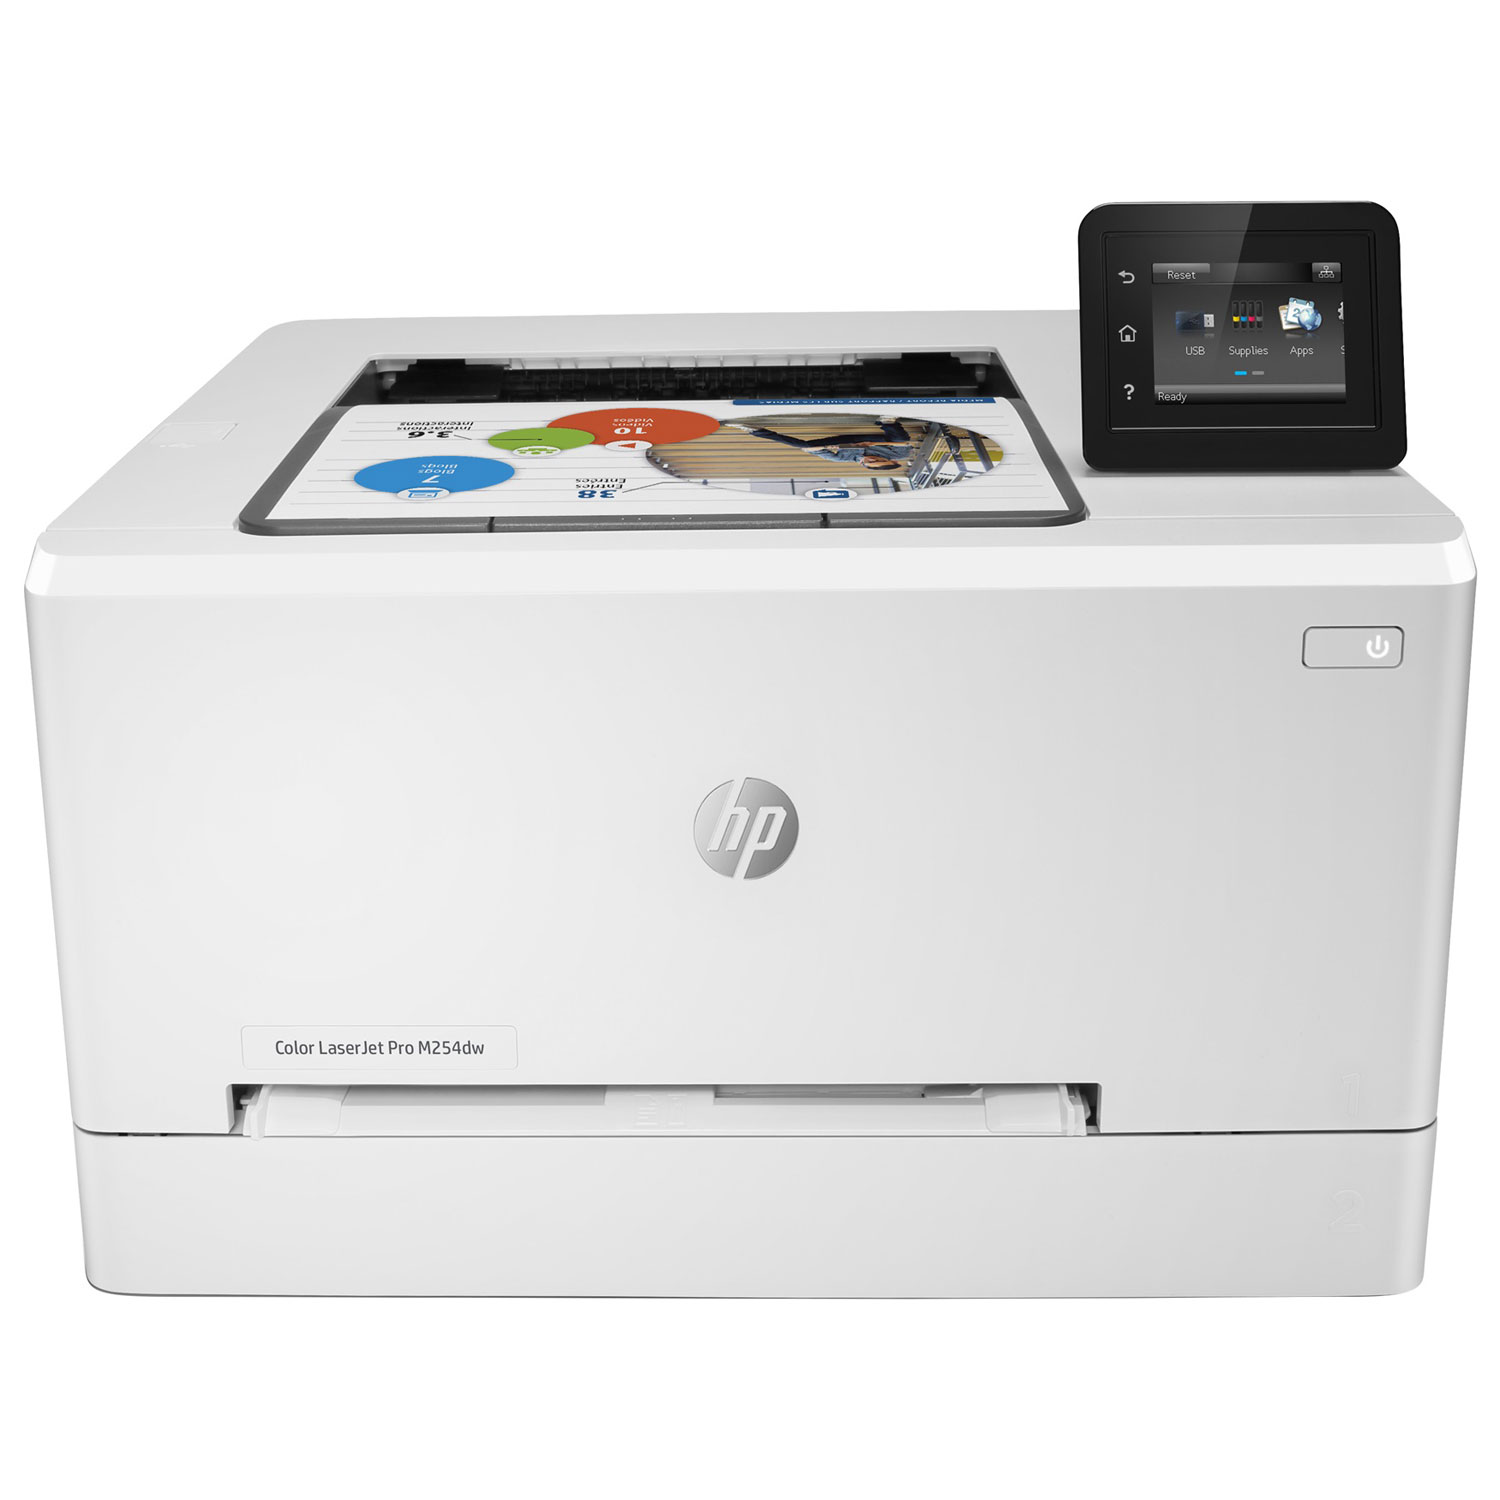 hp color laserjet pro m254dw imprimante laser hp sur. Black Bedroom Furniture Sets. Home Design Ideas